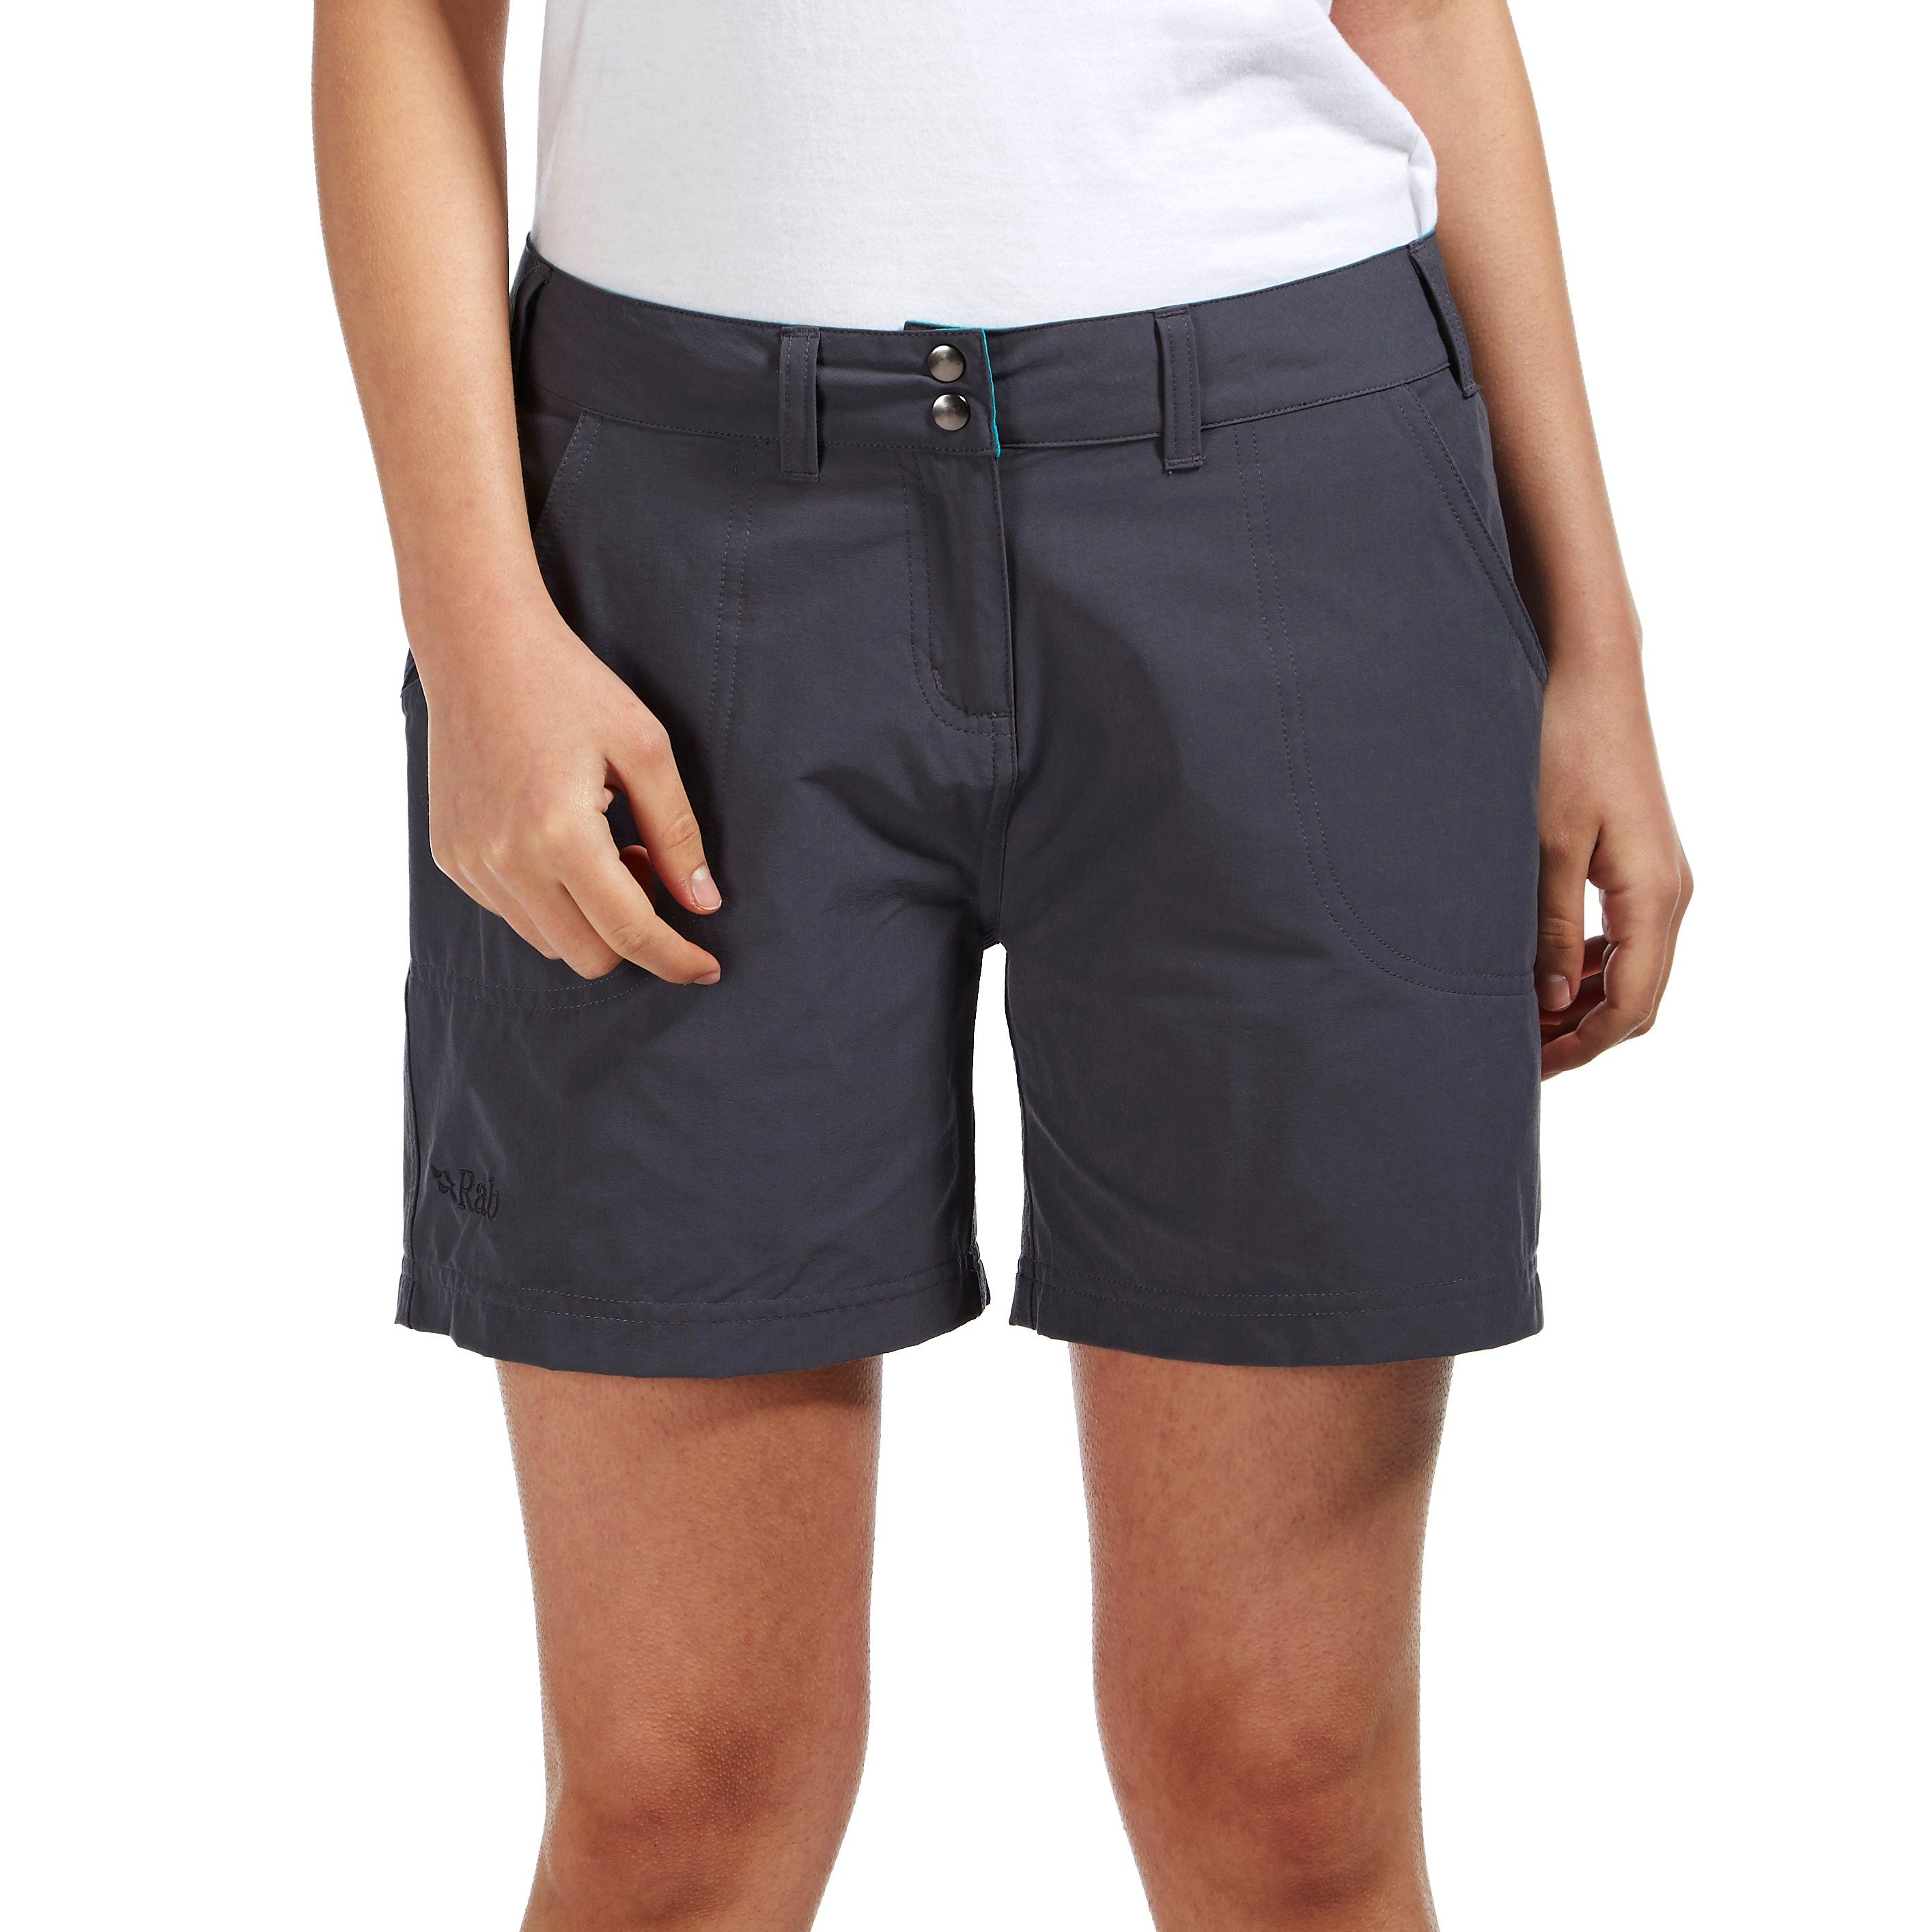 RAB Women's Helix Shorts